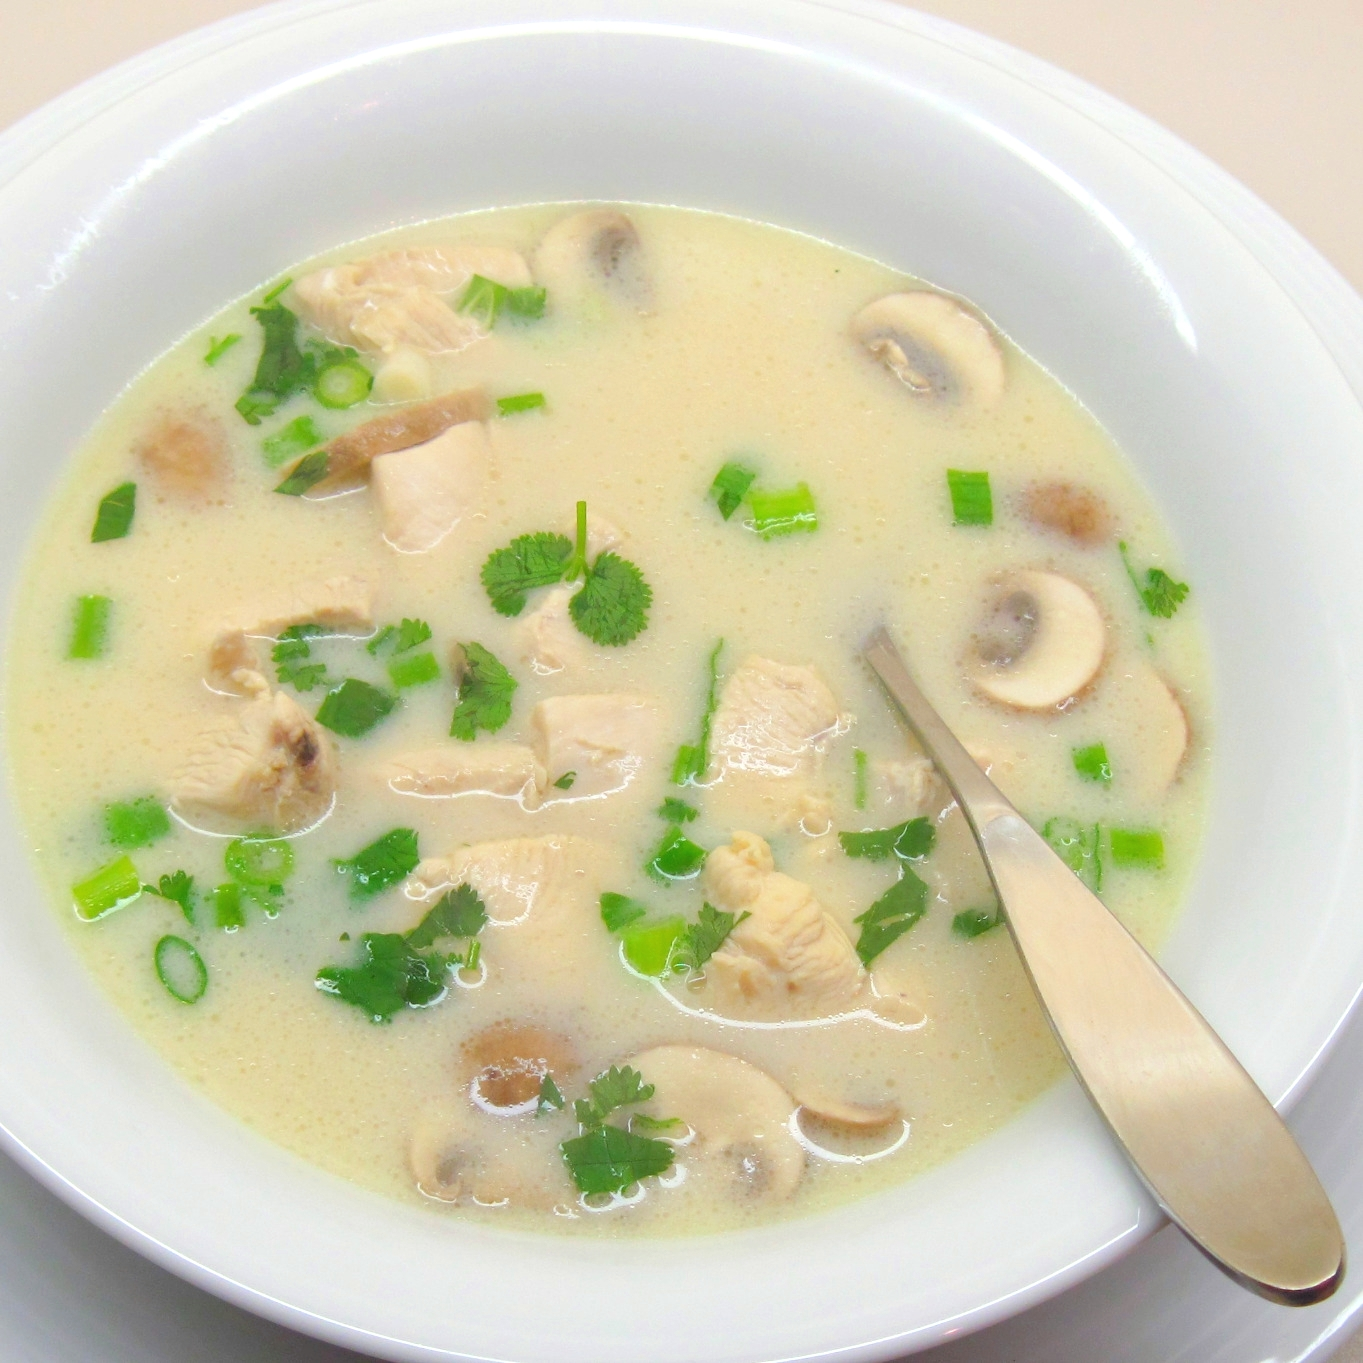 Thai Food Tom Yam Goong Recipe . 5:58. Tom Kha Gai - Thai Chicken ...